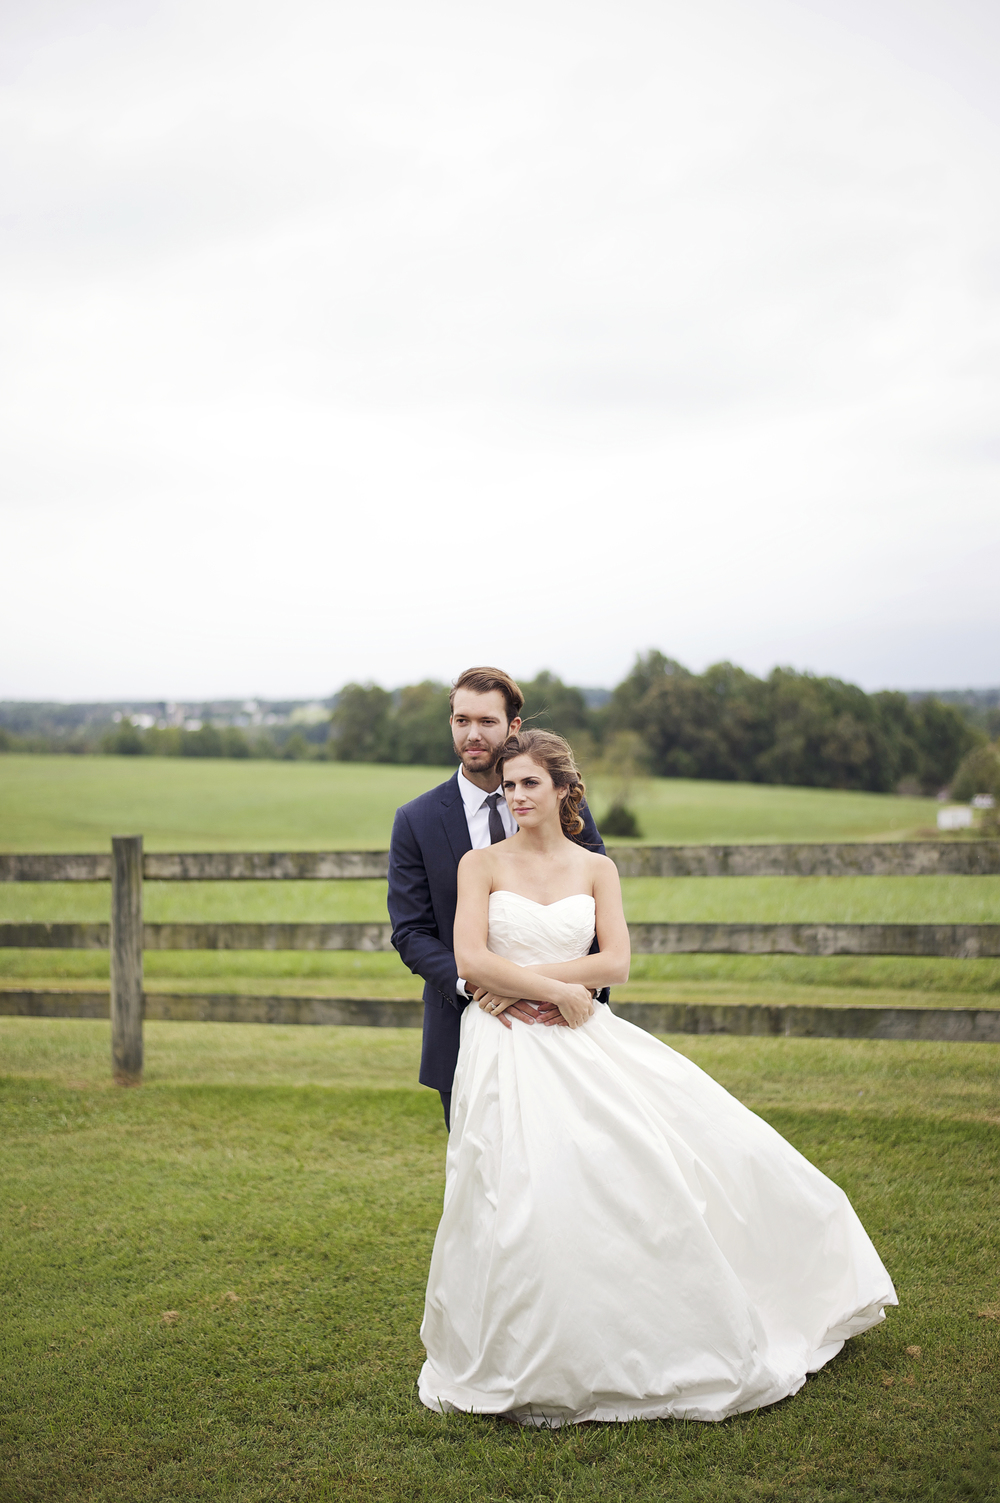 lynchburgweddingphotographer